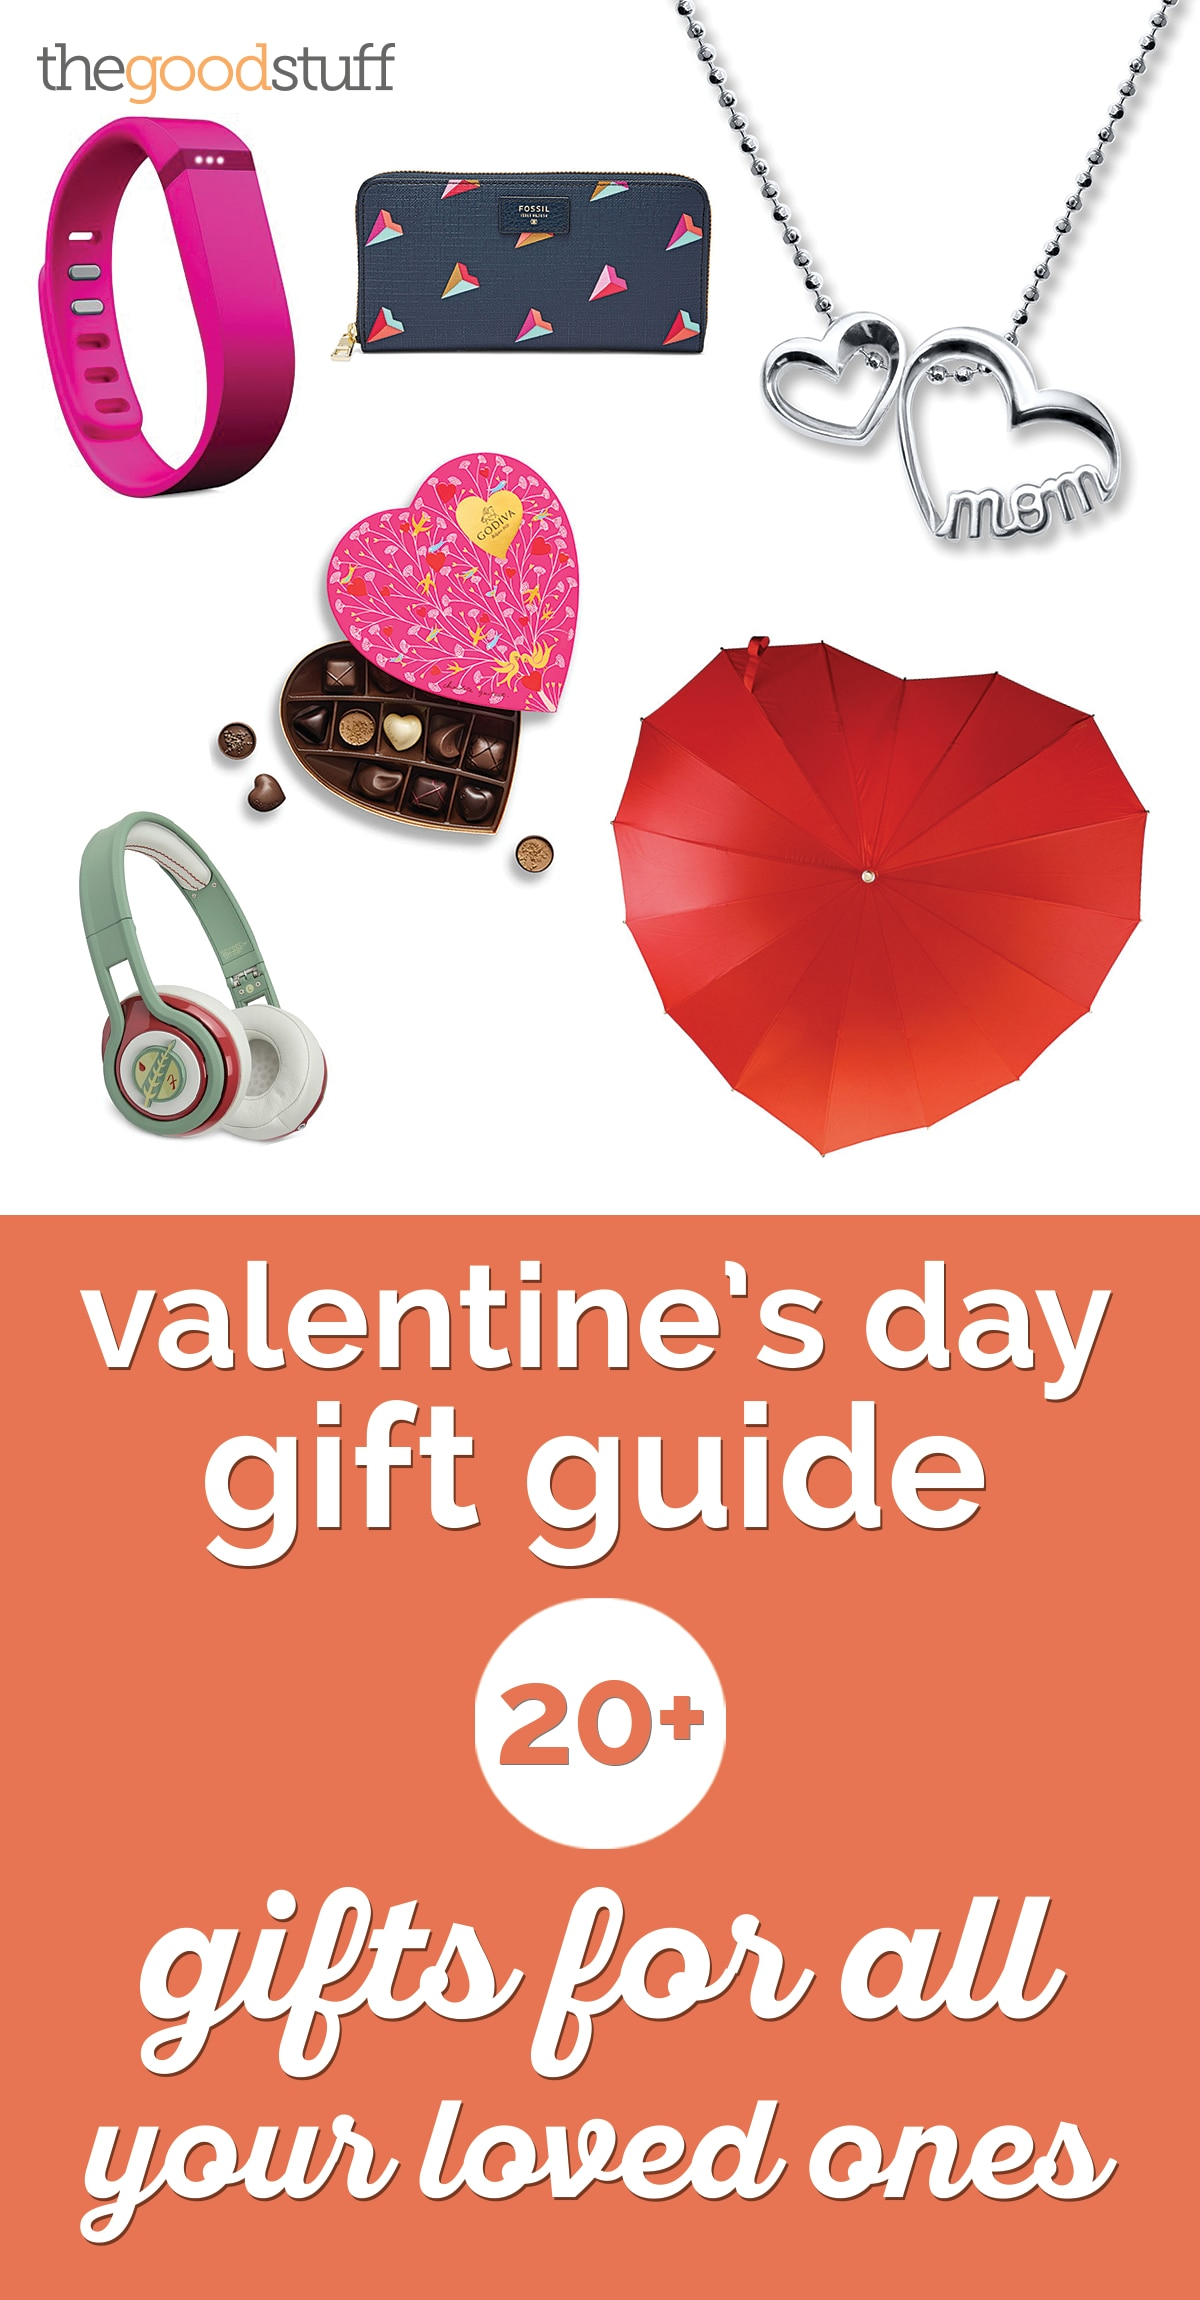 Valentine's Day Gift Guide: 15 Gifts for All Your Loved Ones | thegoodstuff